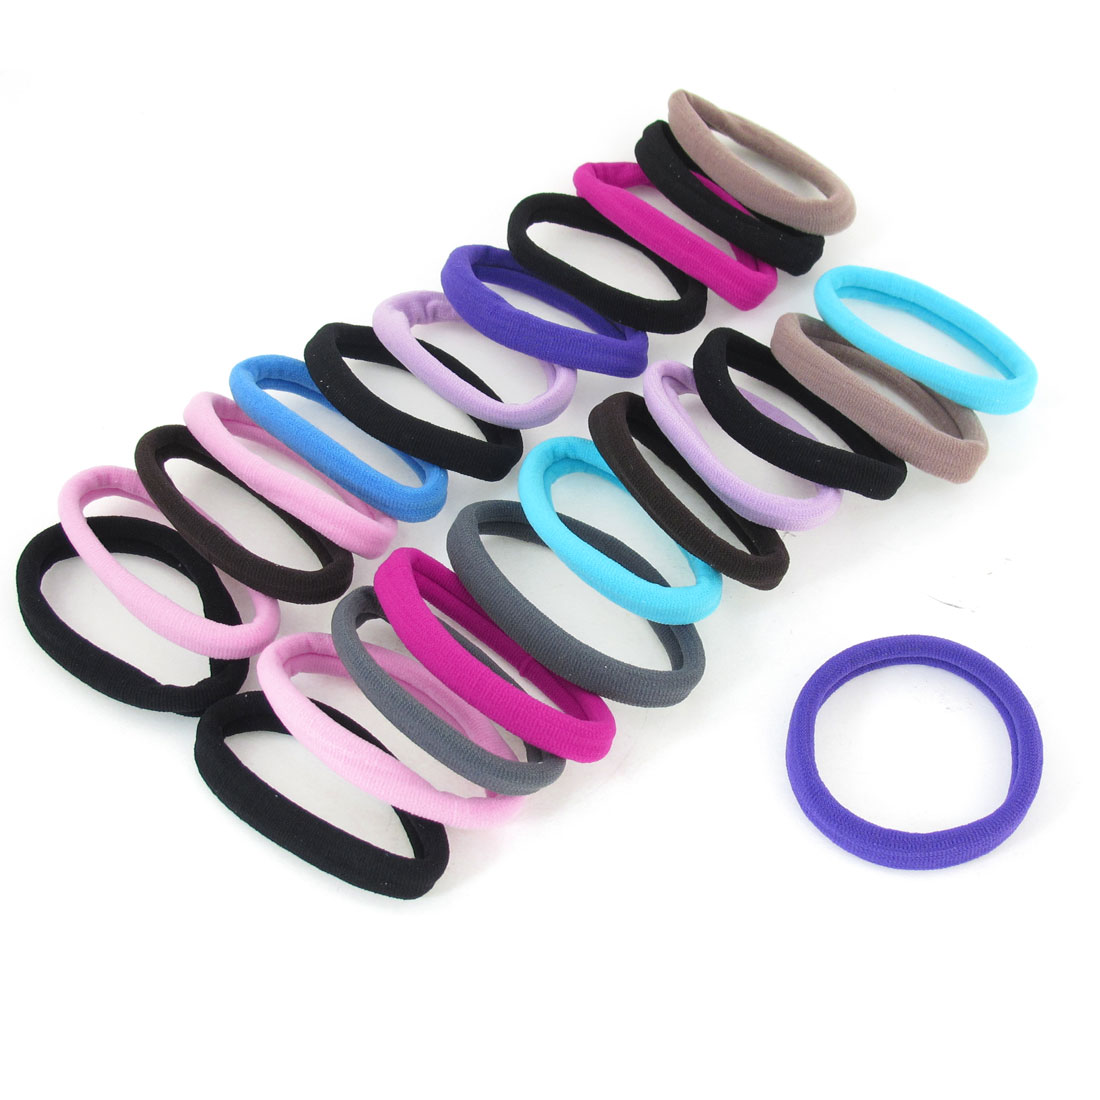 "Unique Bargains 24 Pcs Assorted Color Stretch Ponytail Holders Hair Ties Bands 0.4"" Width"